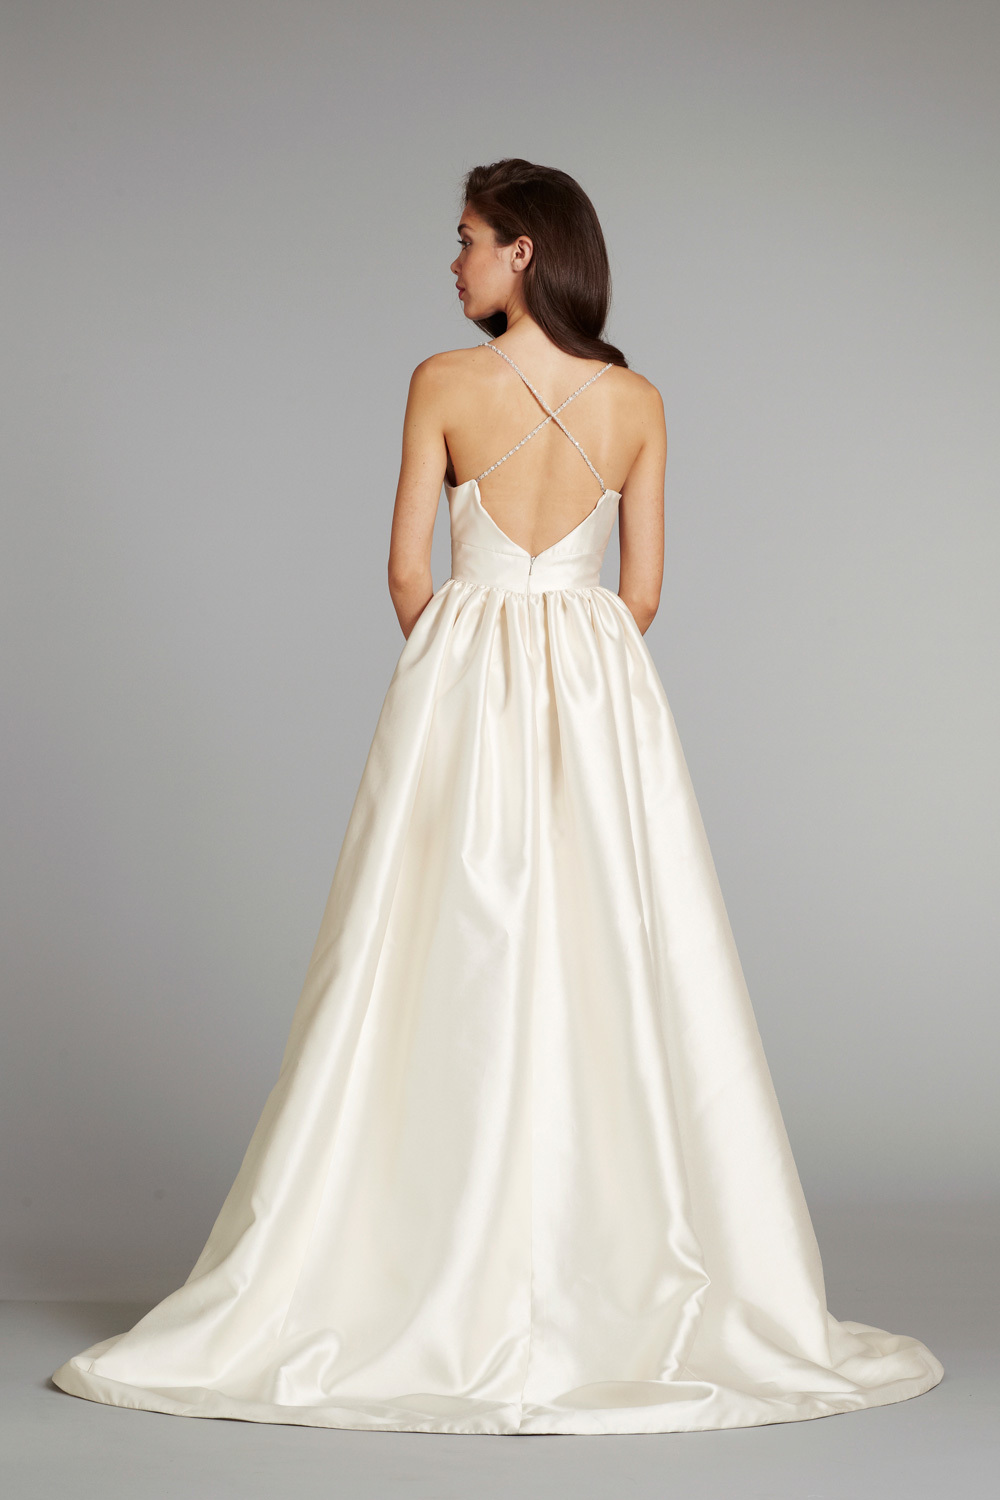 Bridal-gown-wedding-dress-jlm-hayley-paige-blush-fall-2012-maple-back.full